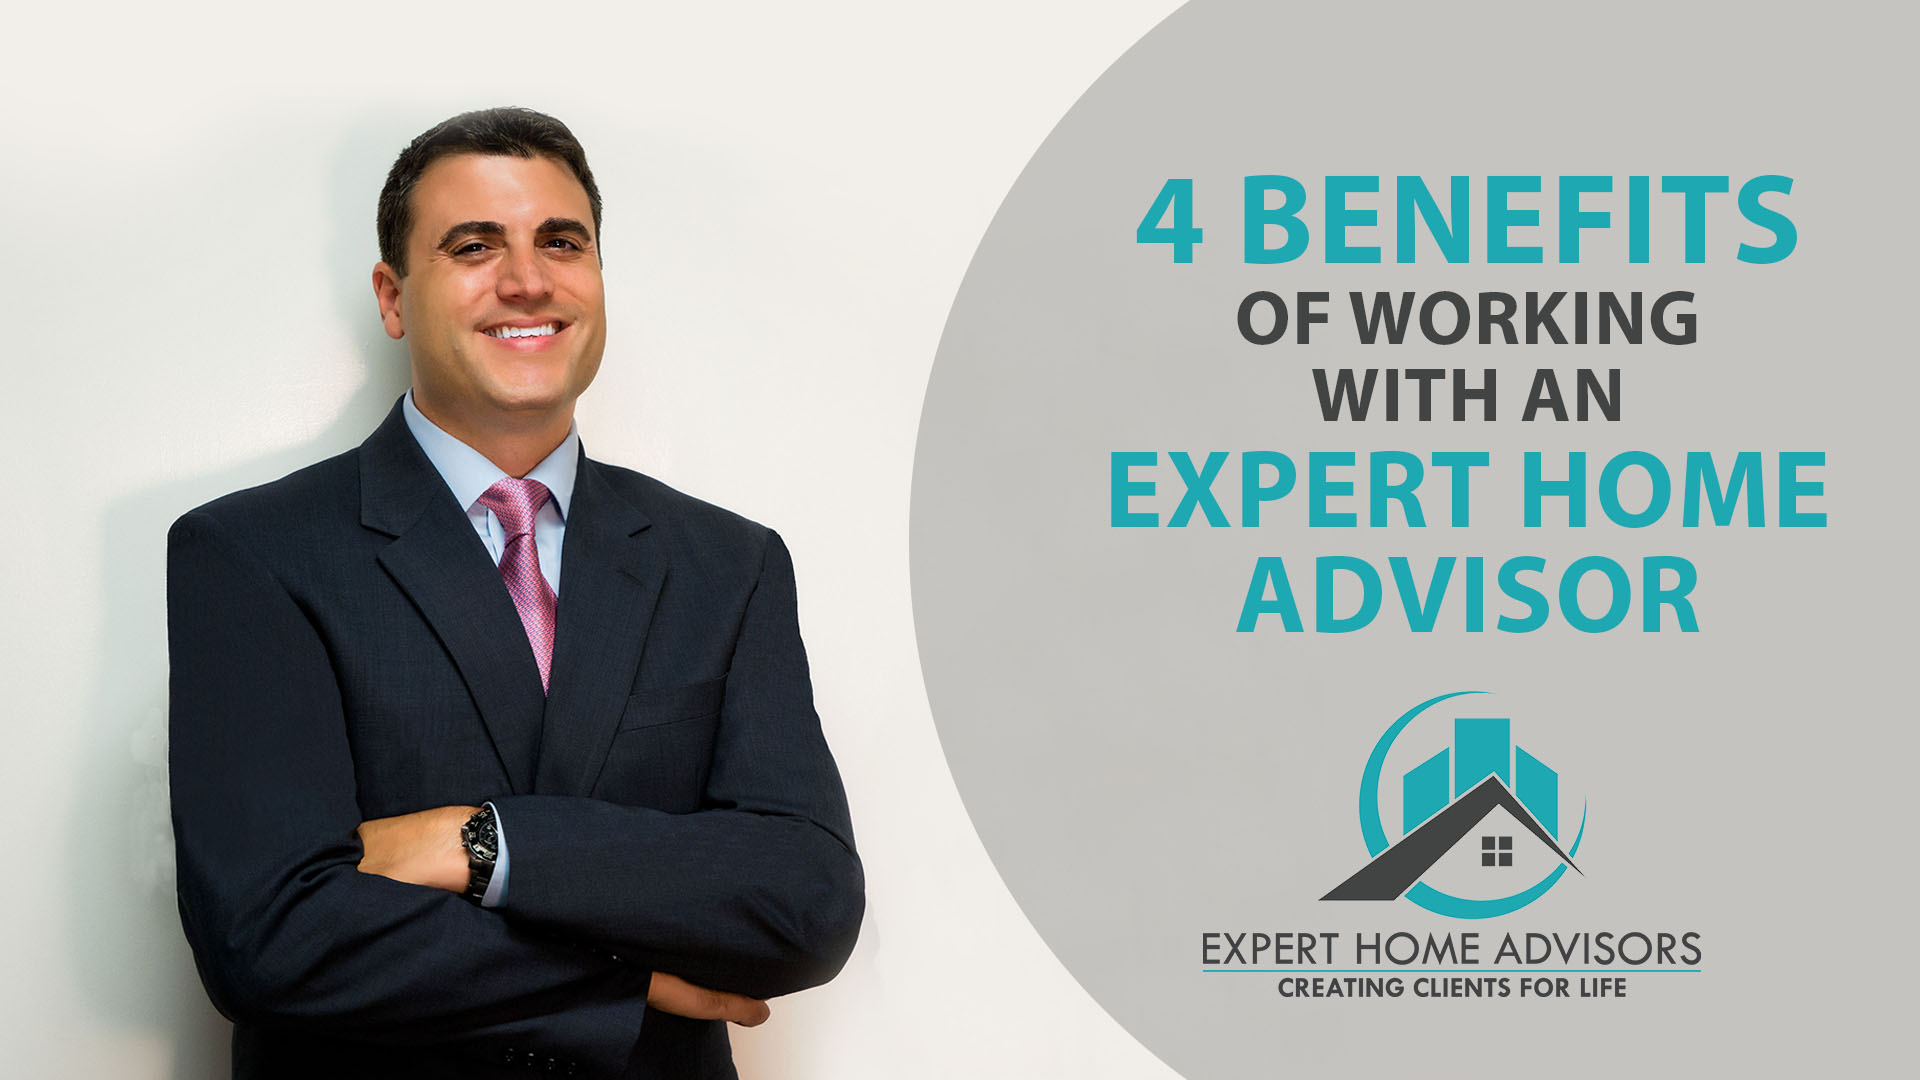 The Top 4 Benefits of Working With an Expert Home Advisor